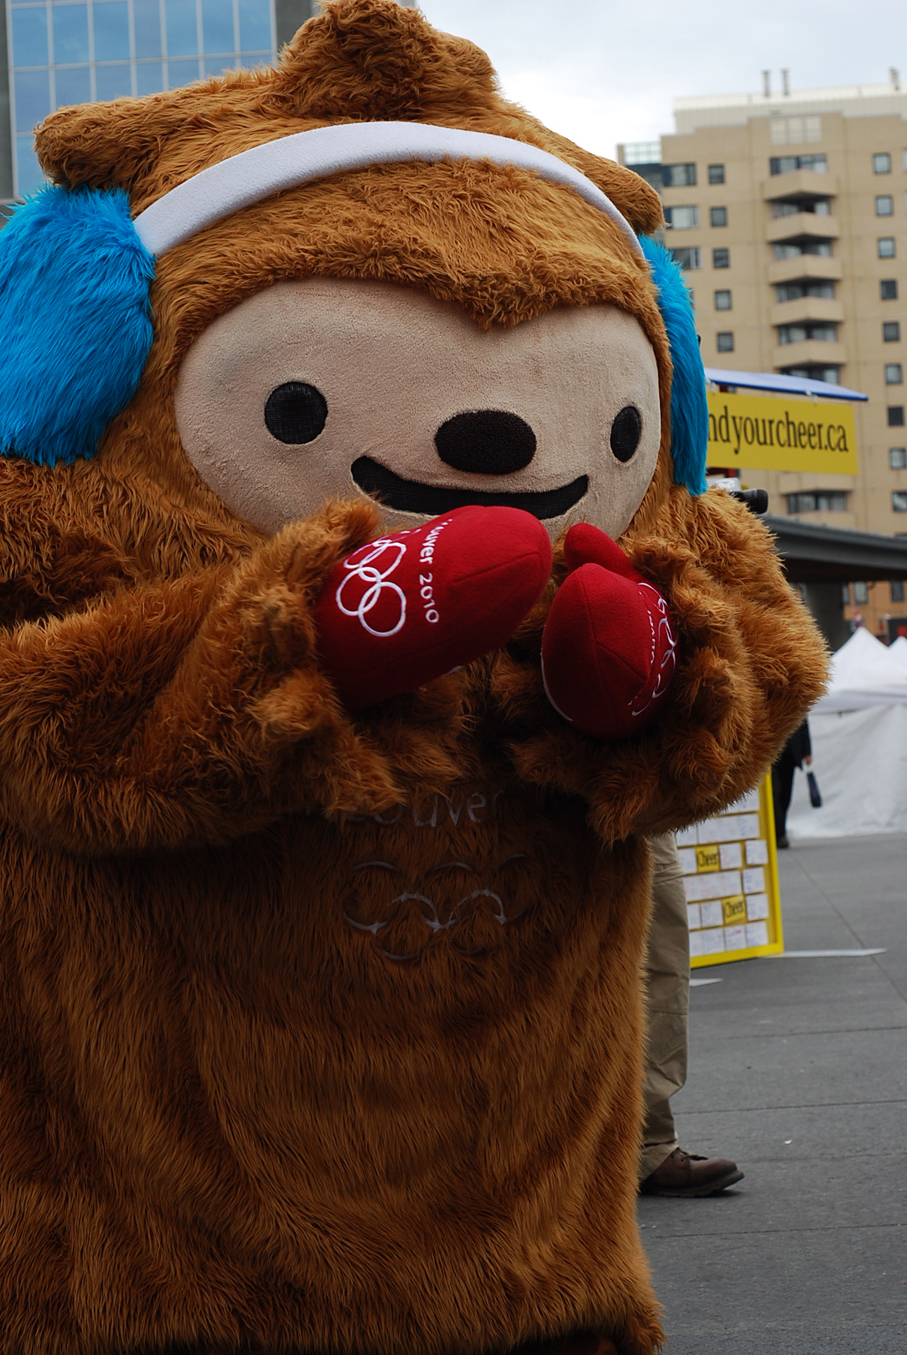 http://upload.wikimedia.org/wikipedia/commons/8/8d/Quatchi_(mascot).jpg